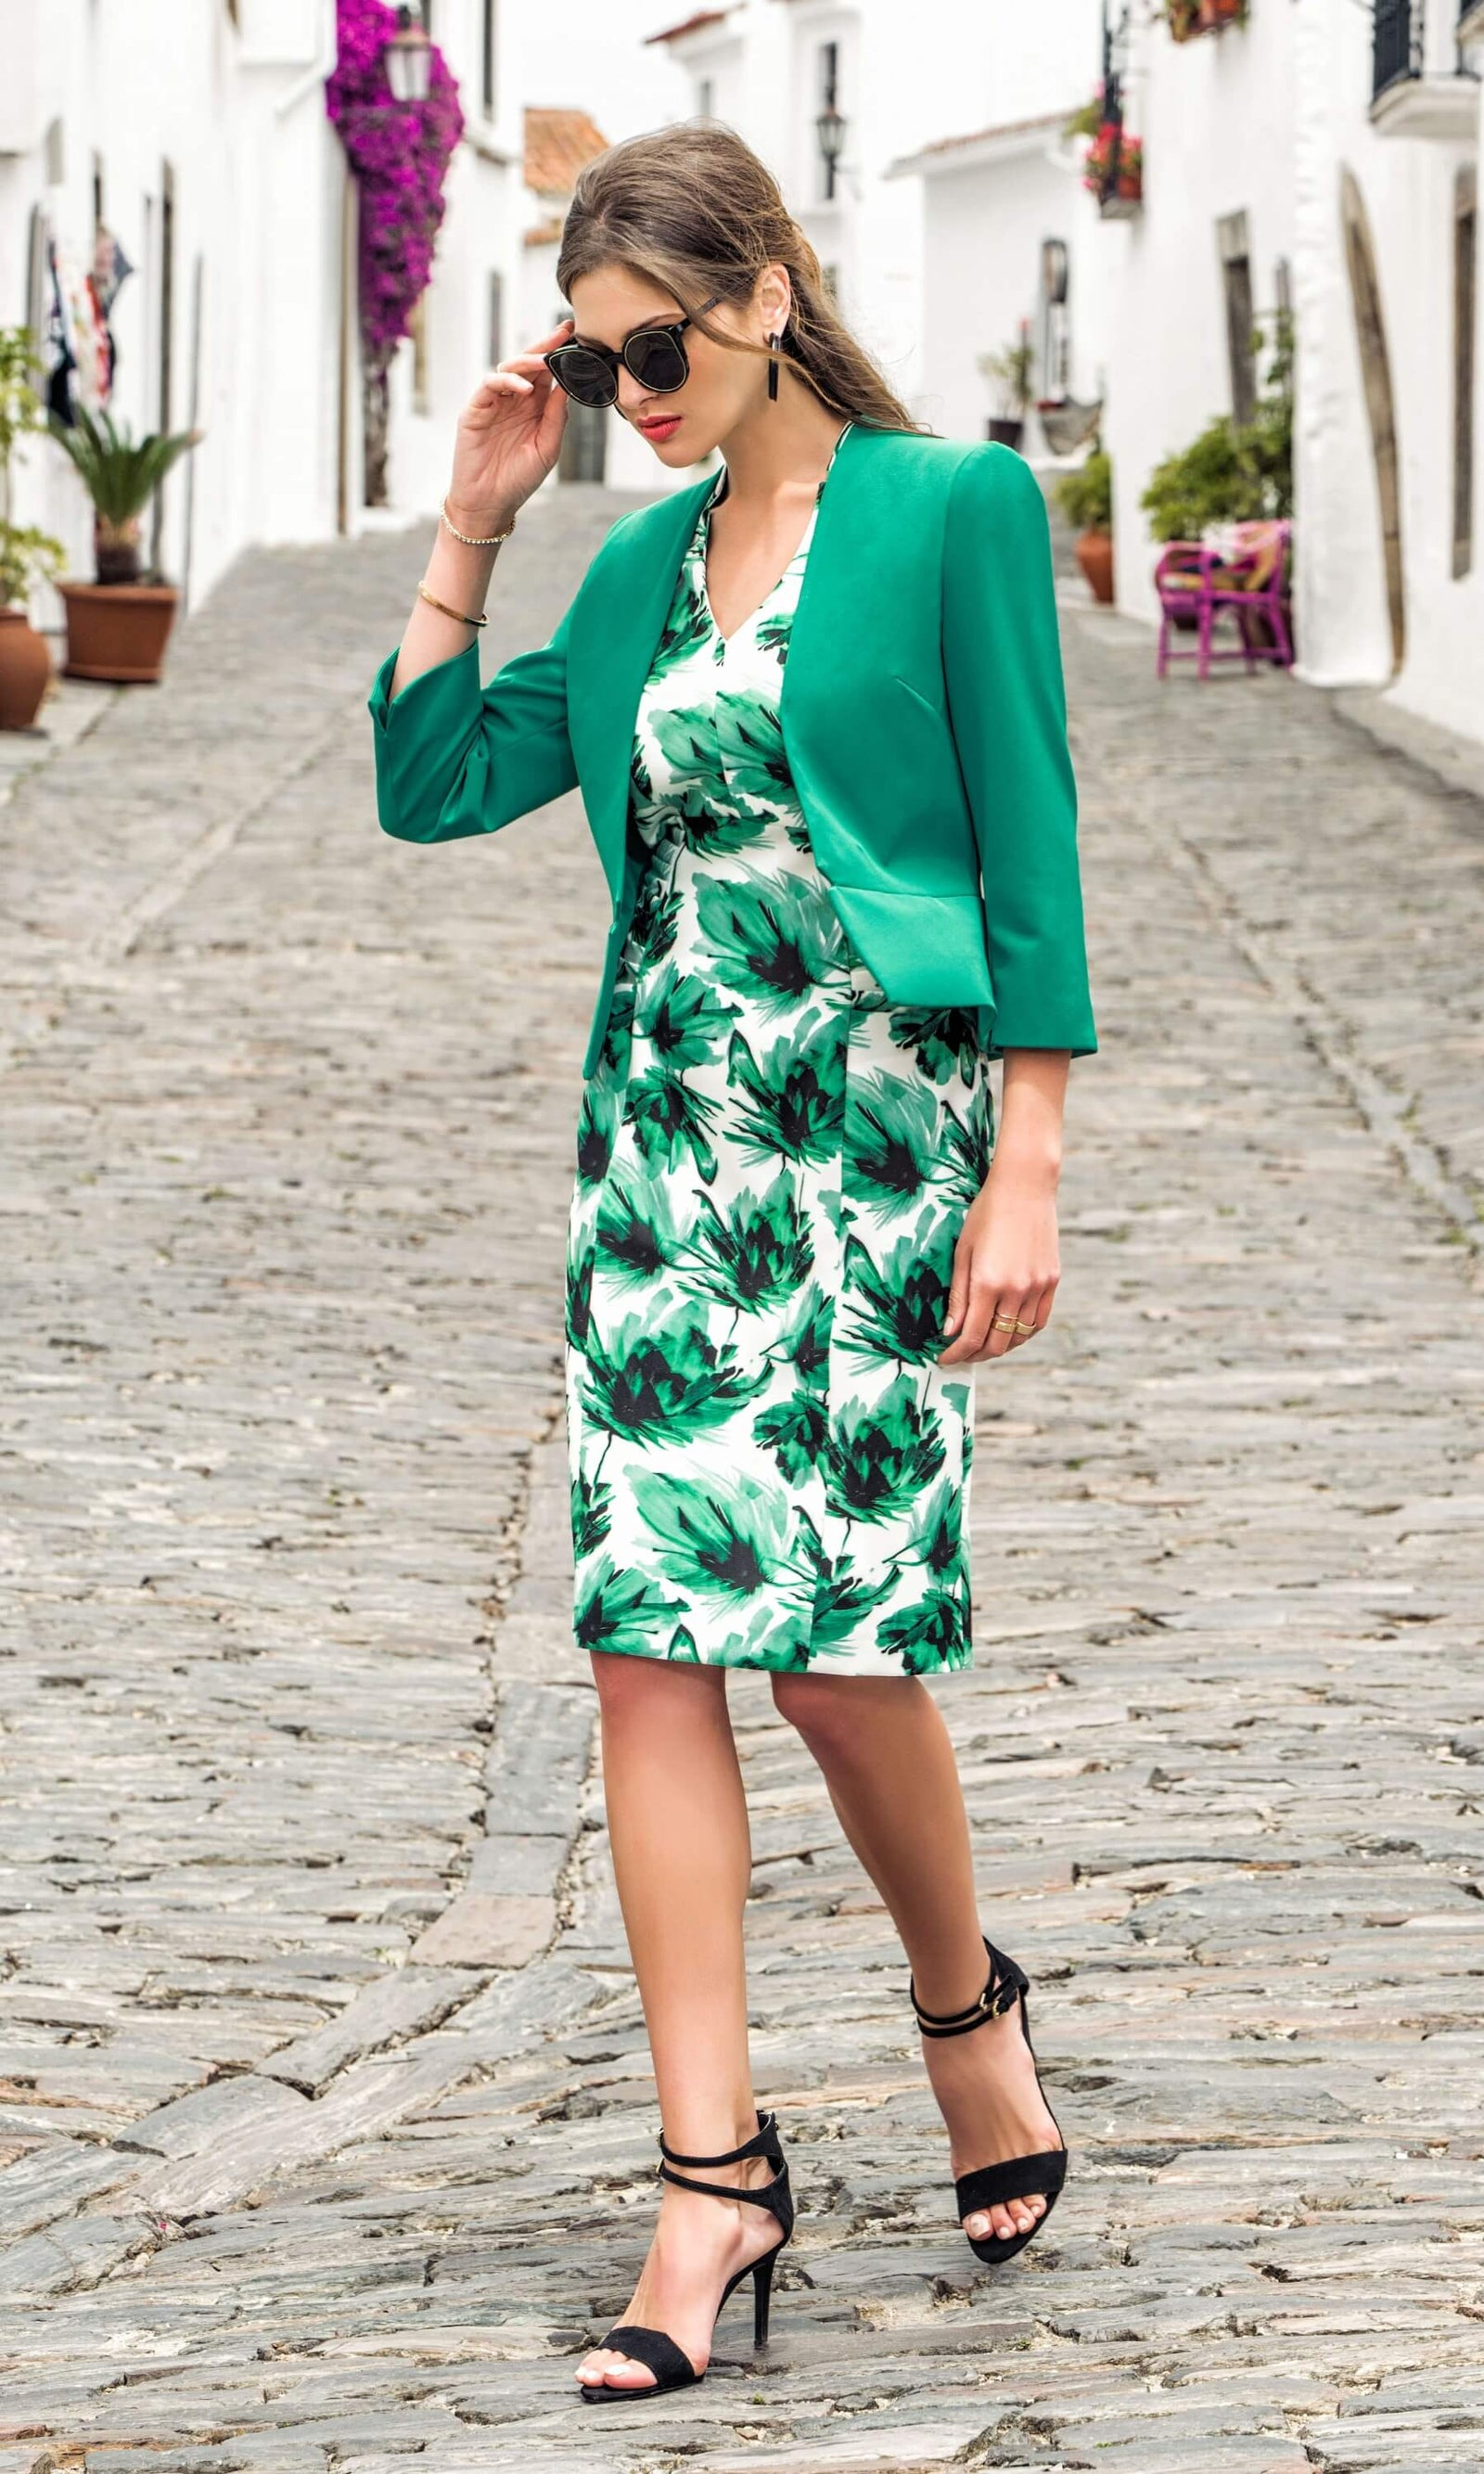 8812 8838 Green Print Michaela Louisa Dress With Bolero - Fab Frocks